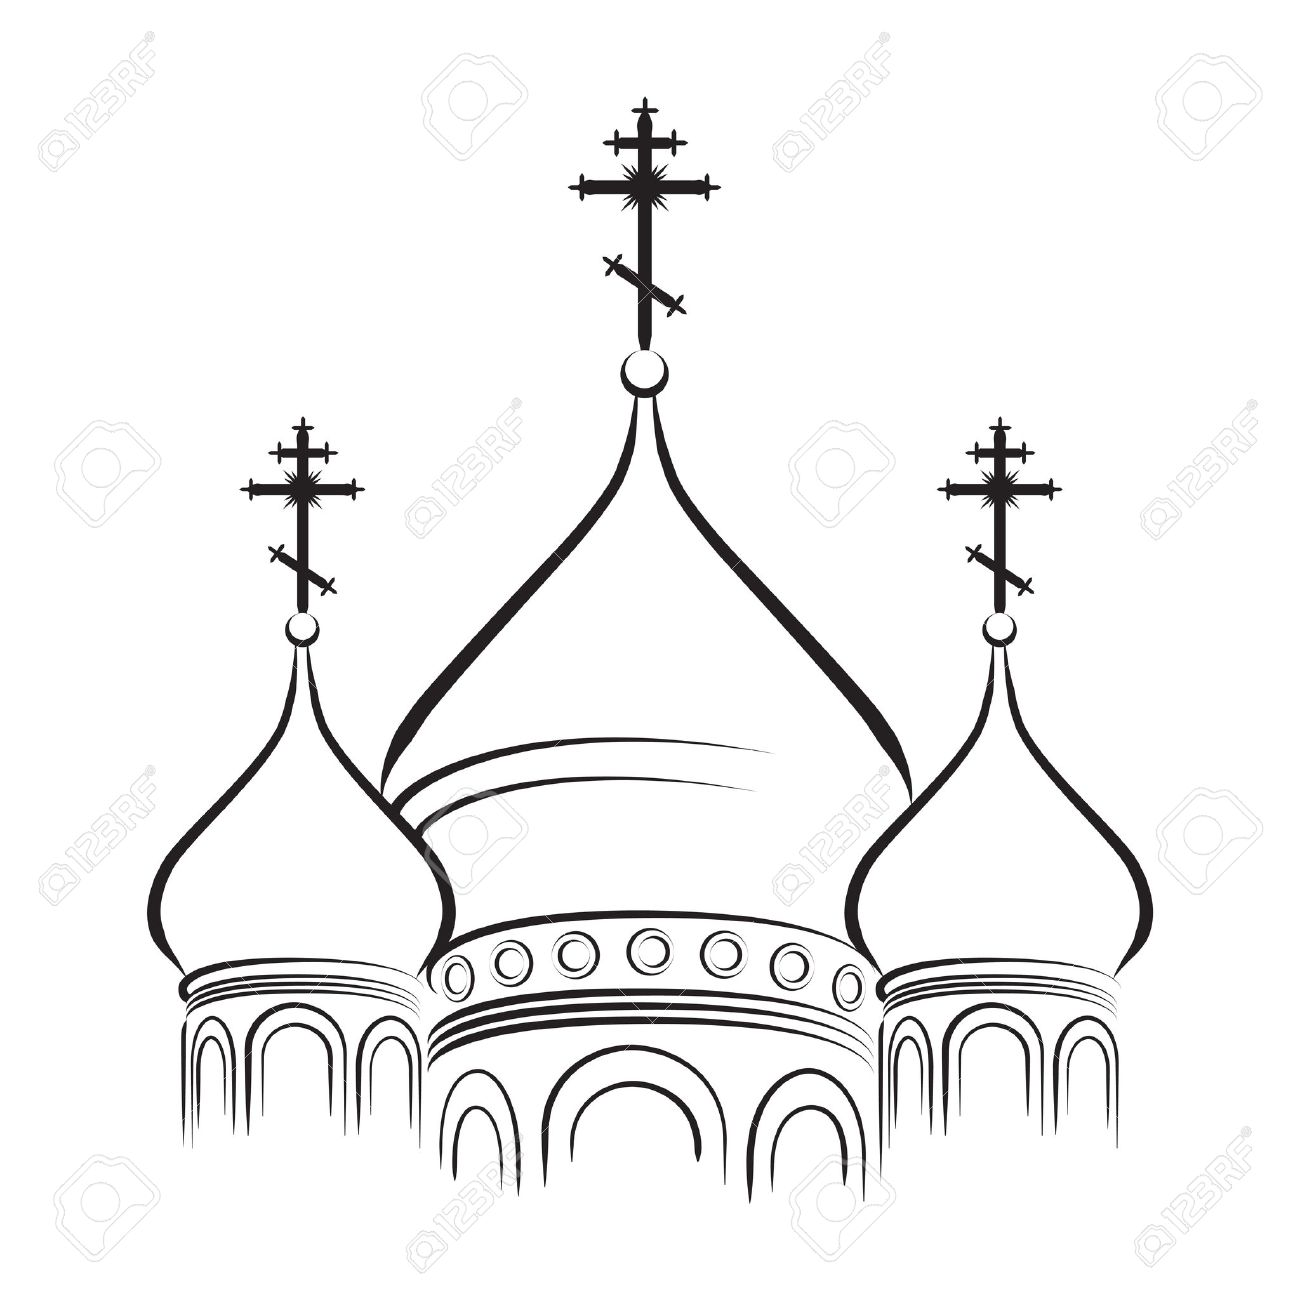 Church outline clip art.